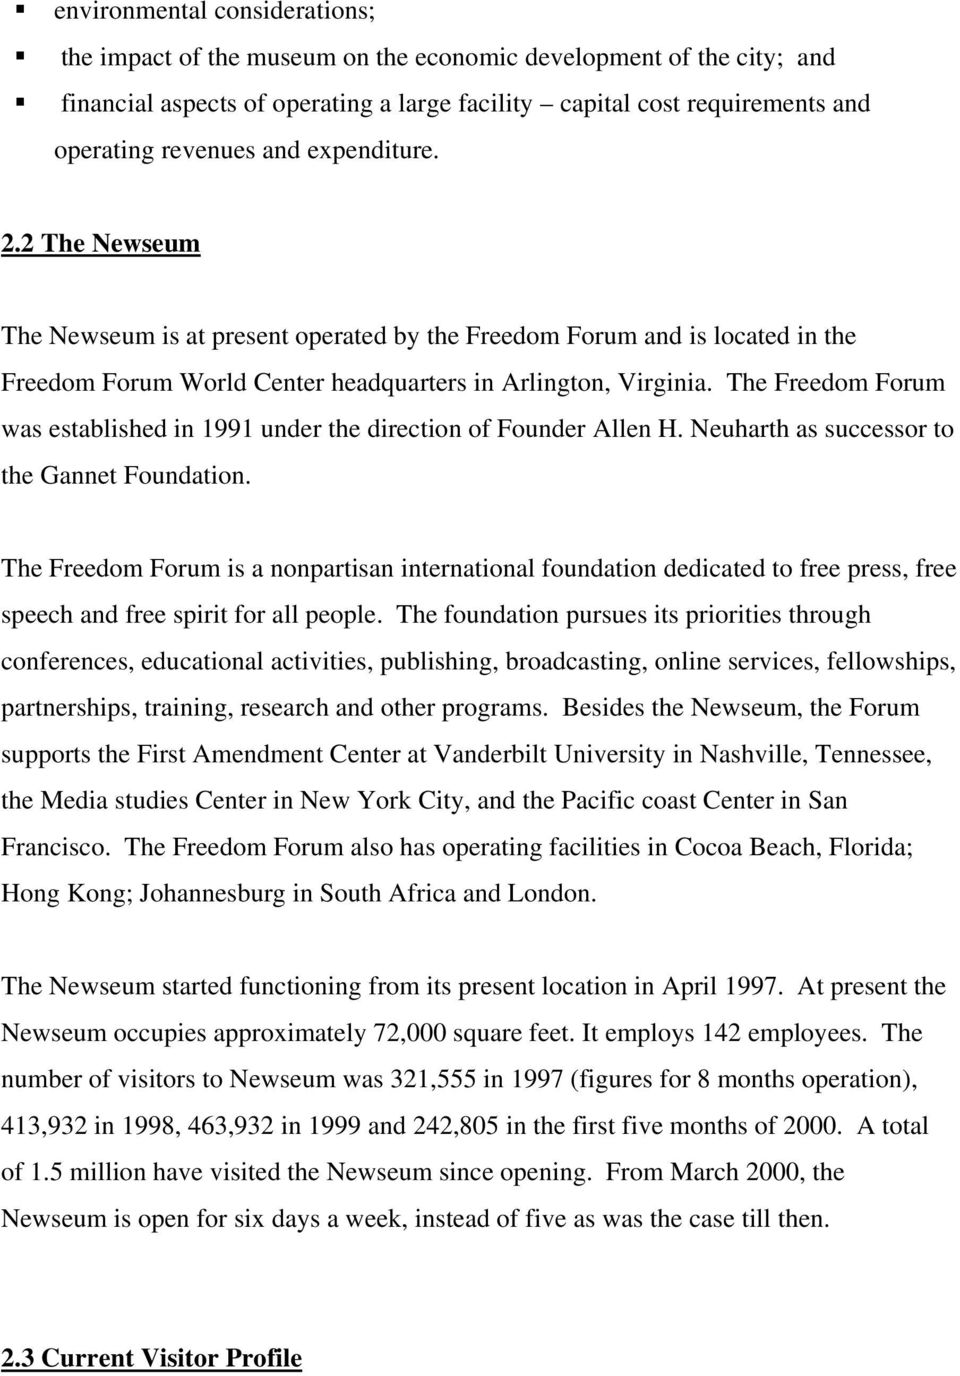 The Freedom Forum was established in 1991 under the direction of Founder Allen H. Neuharth as successor to the Gannet Foundation.